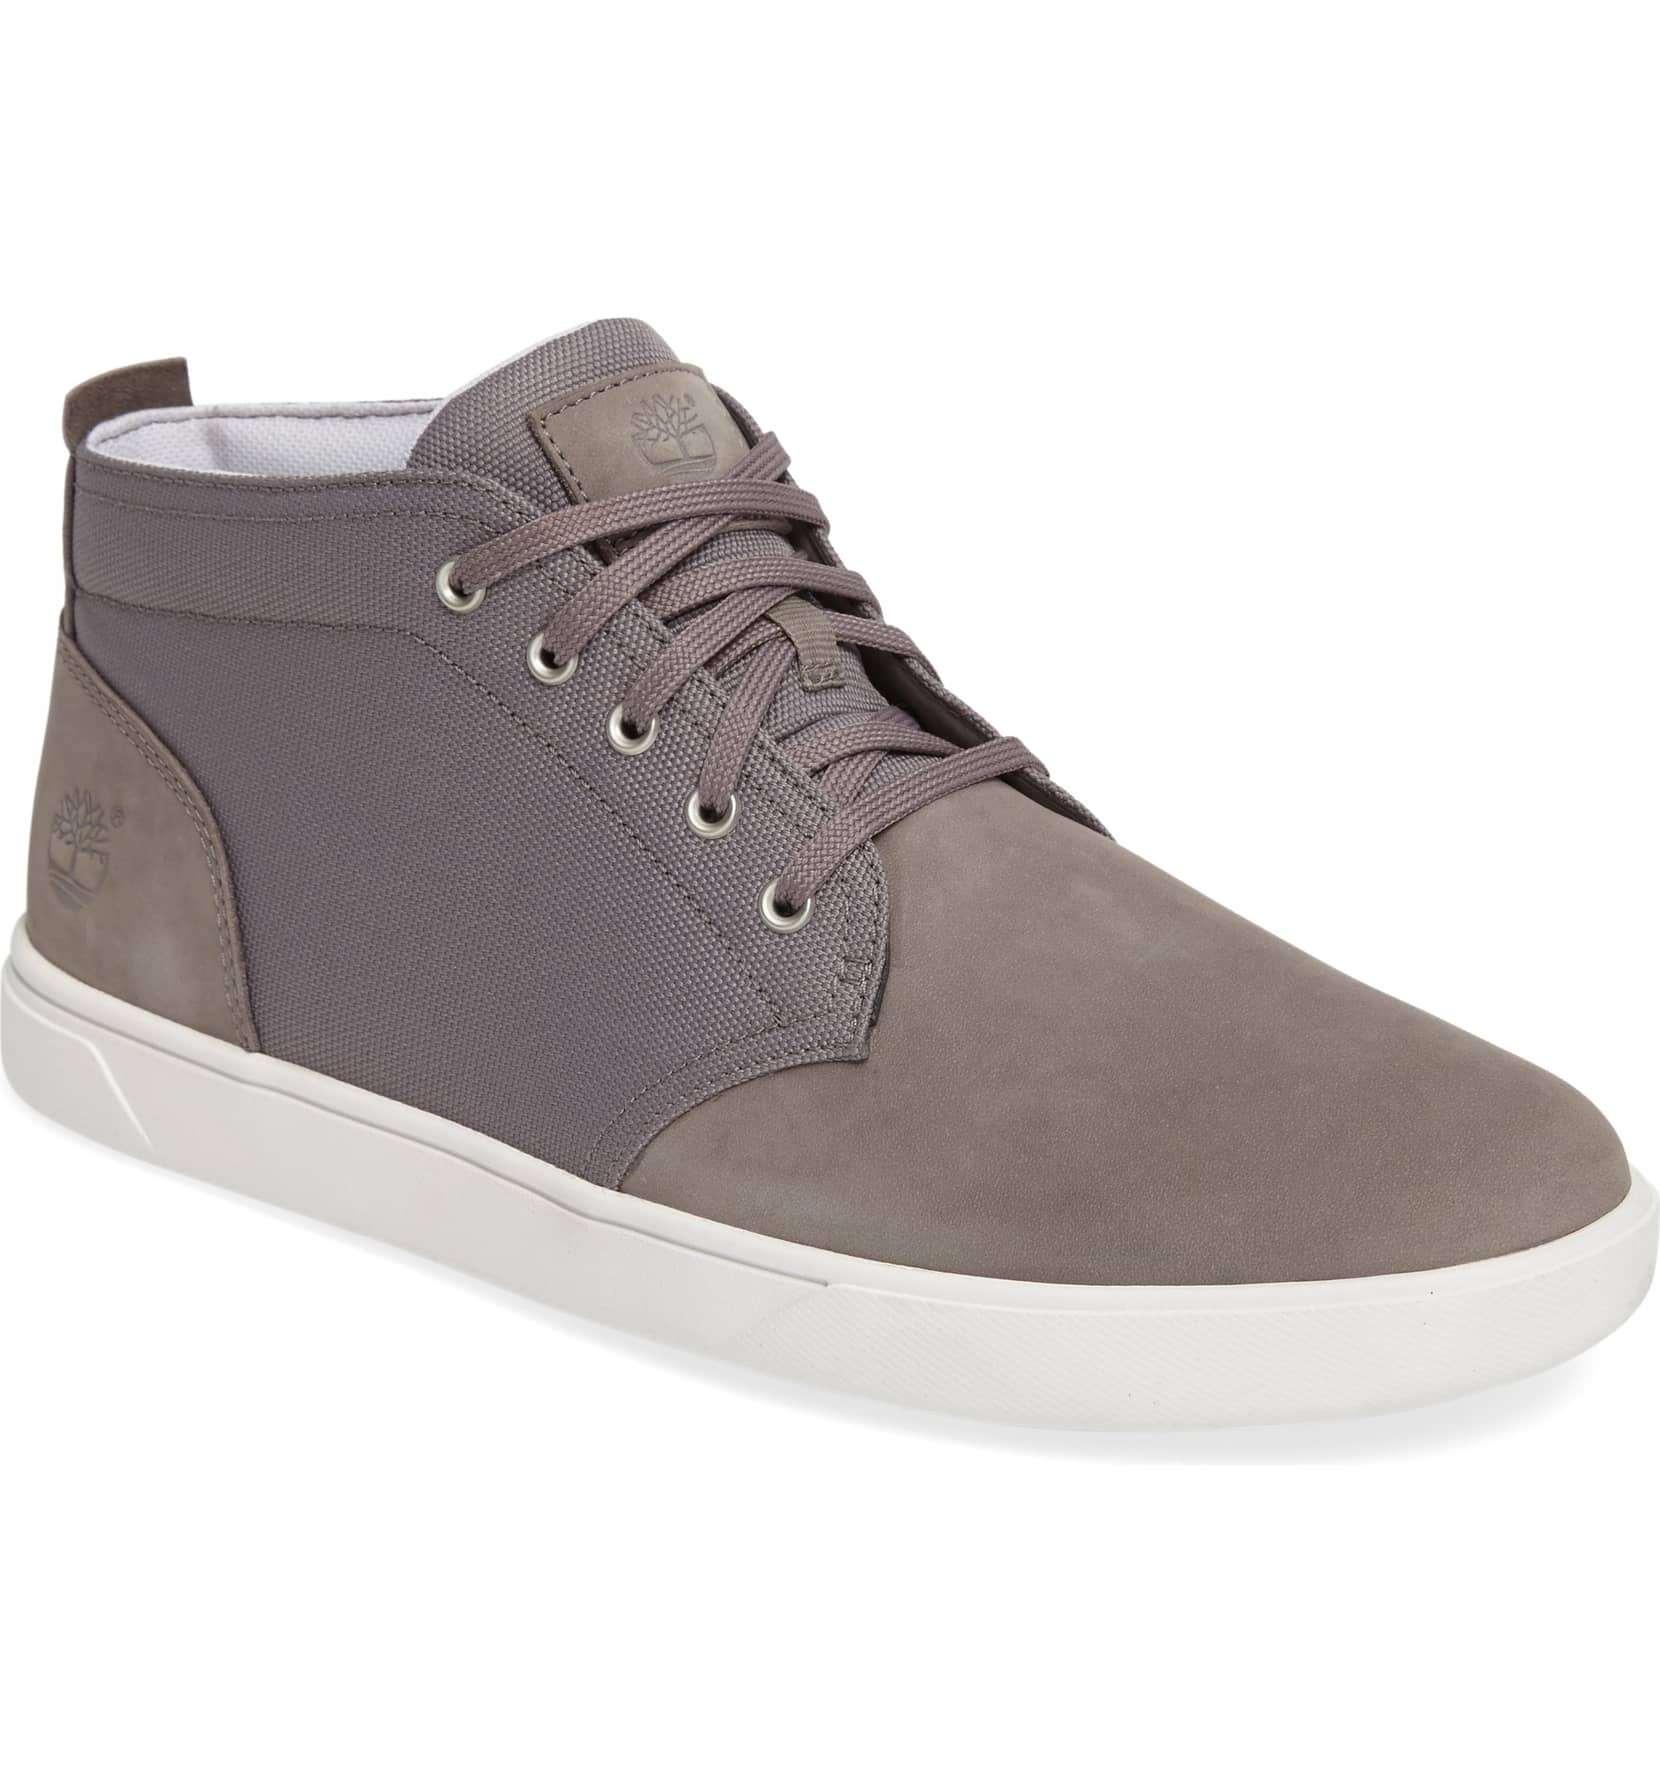 f7bdddc82bd Nordstrom  Timberland Chukka Sneakers – only  40 (reg  80) Shipped ...